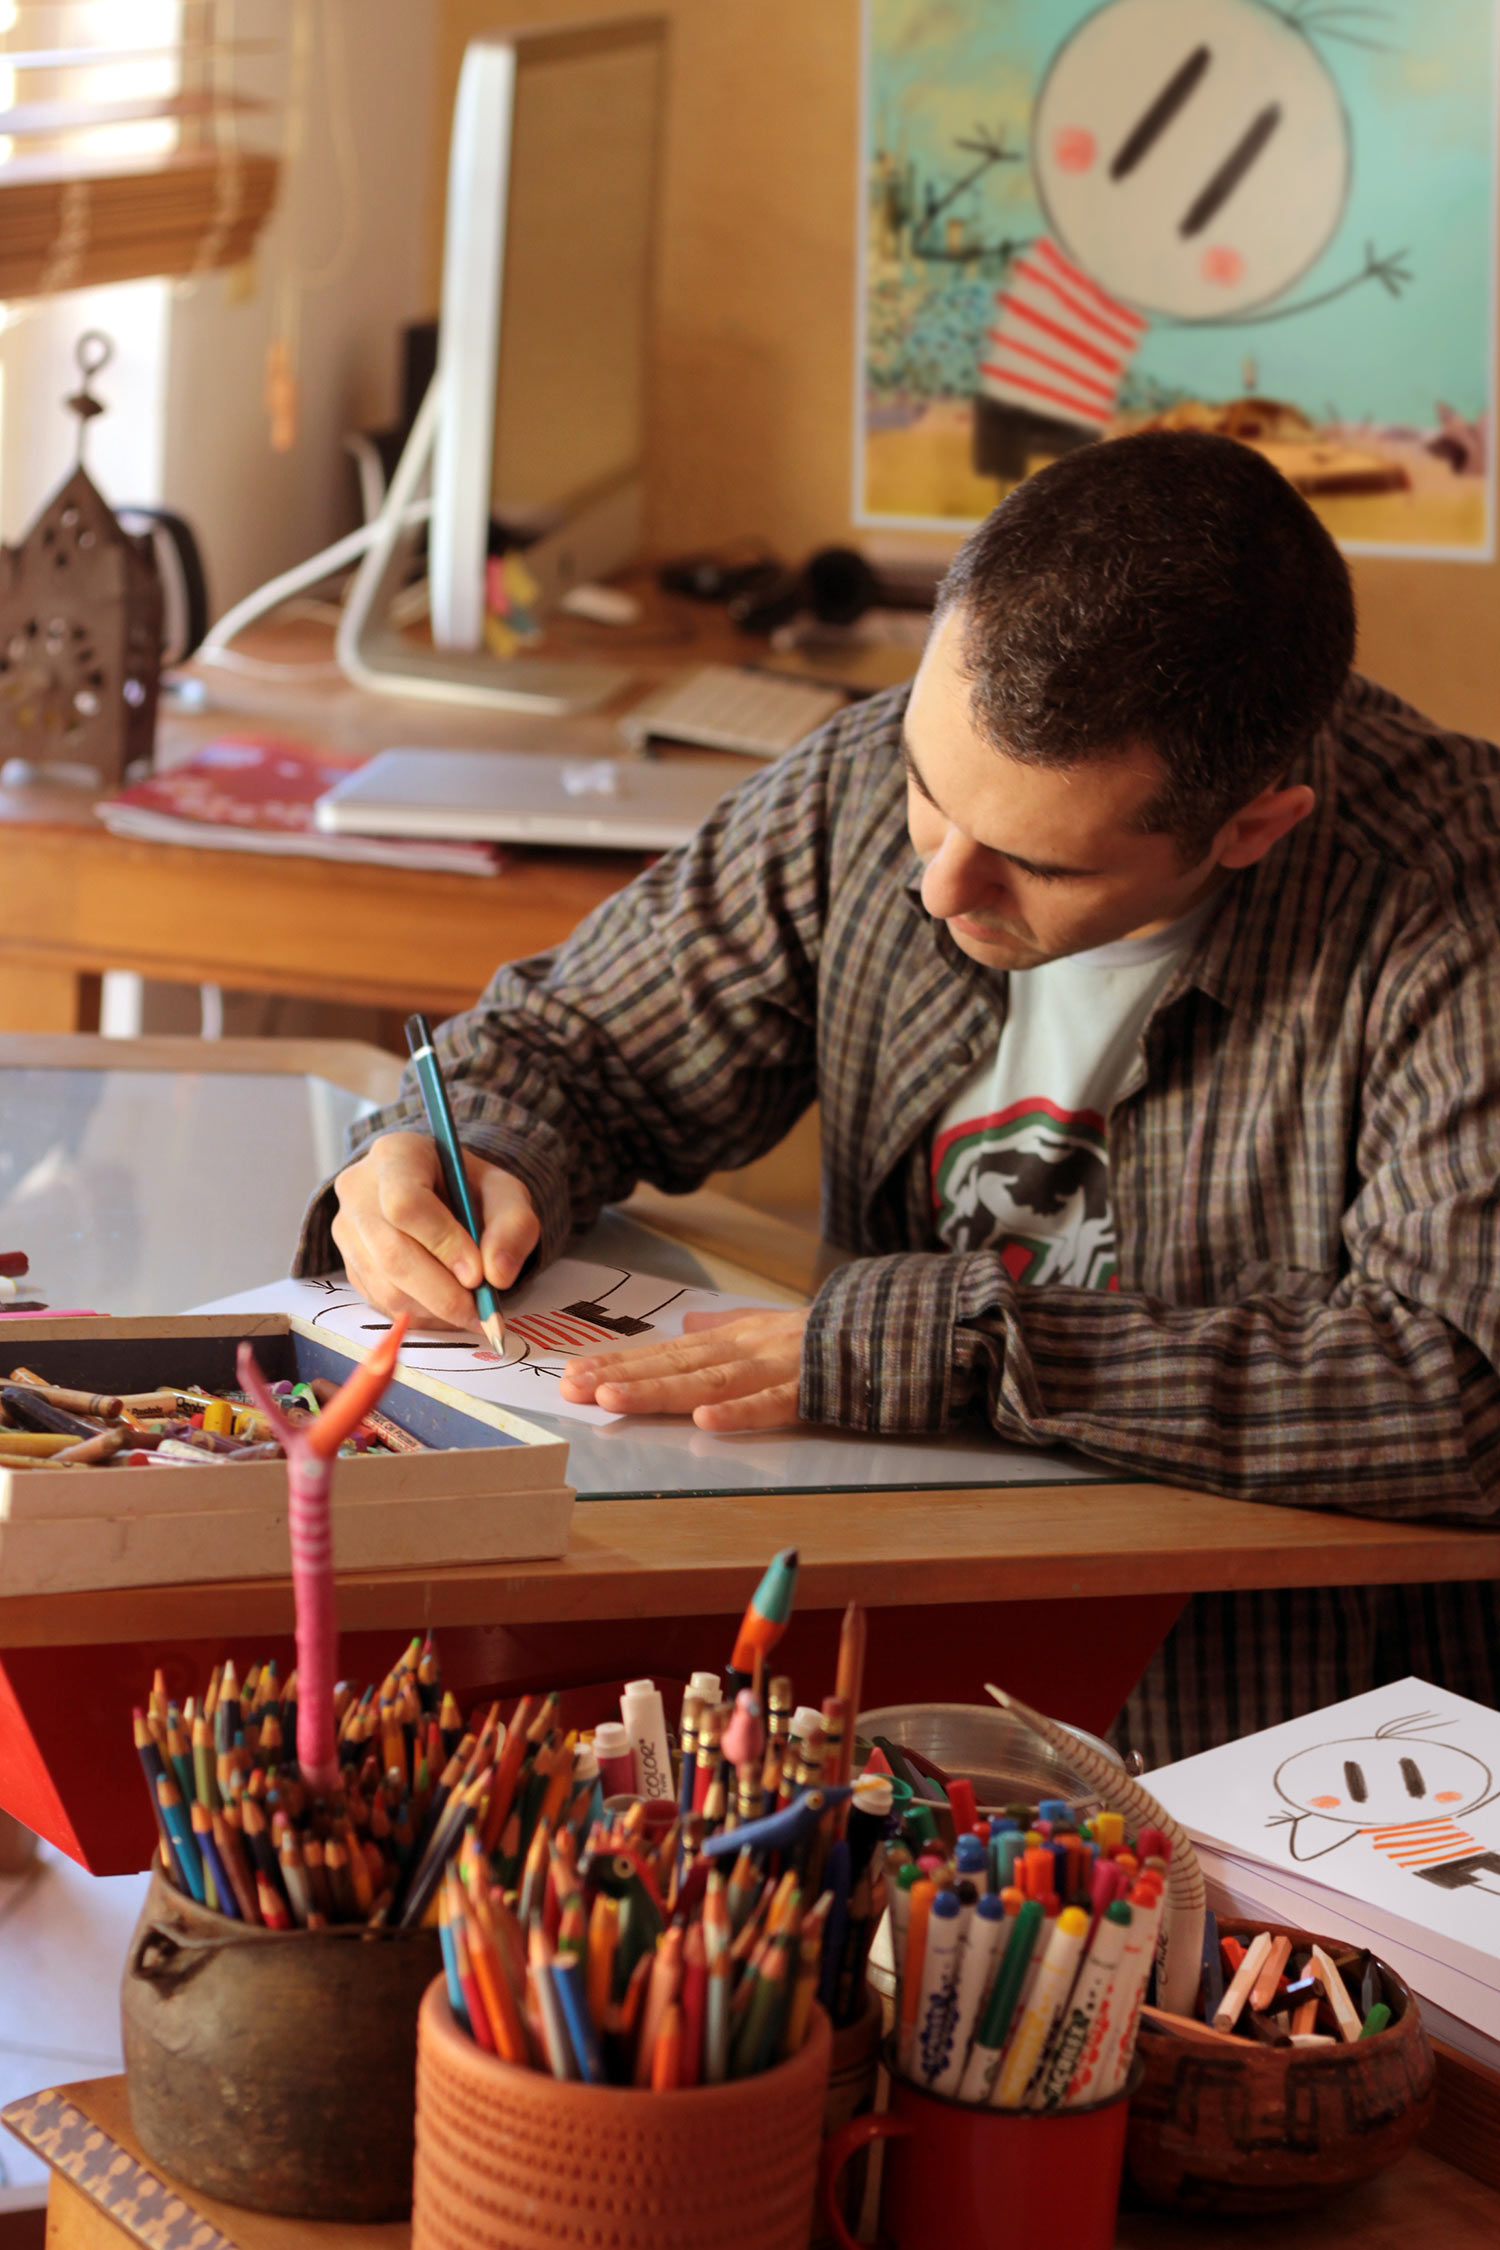 Alê Abreu at work.